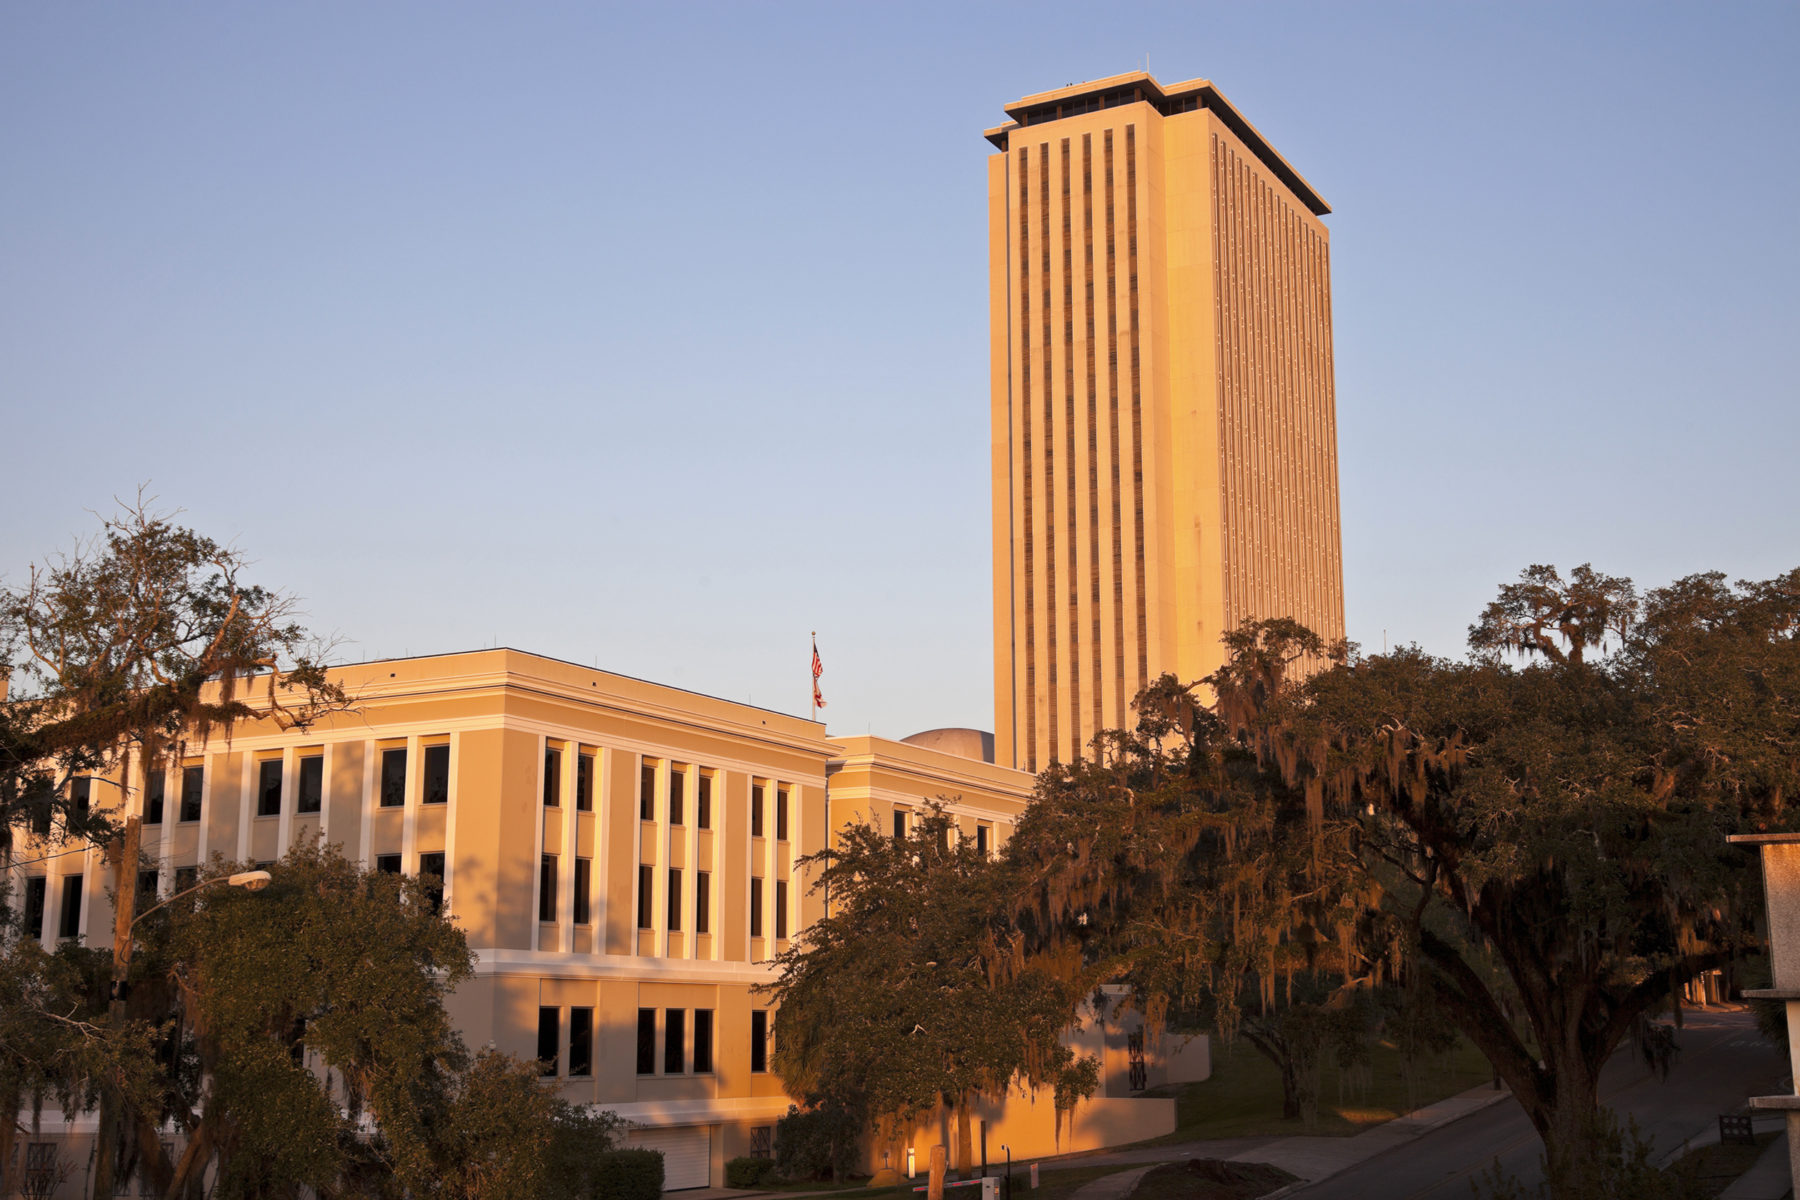 capitol-building-tallahassee-e1517588869683.jpeg